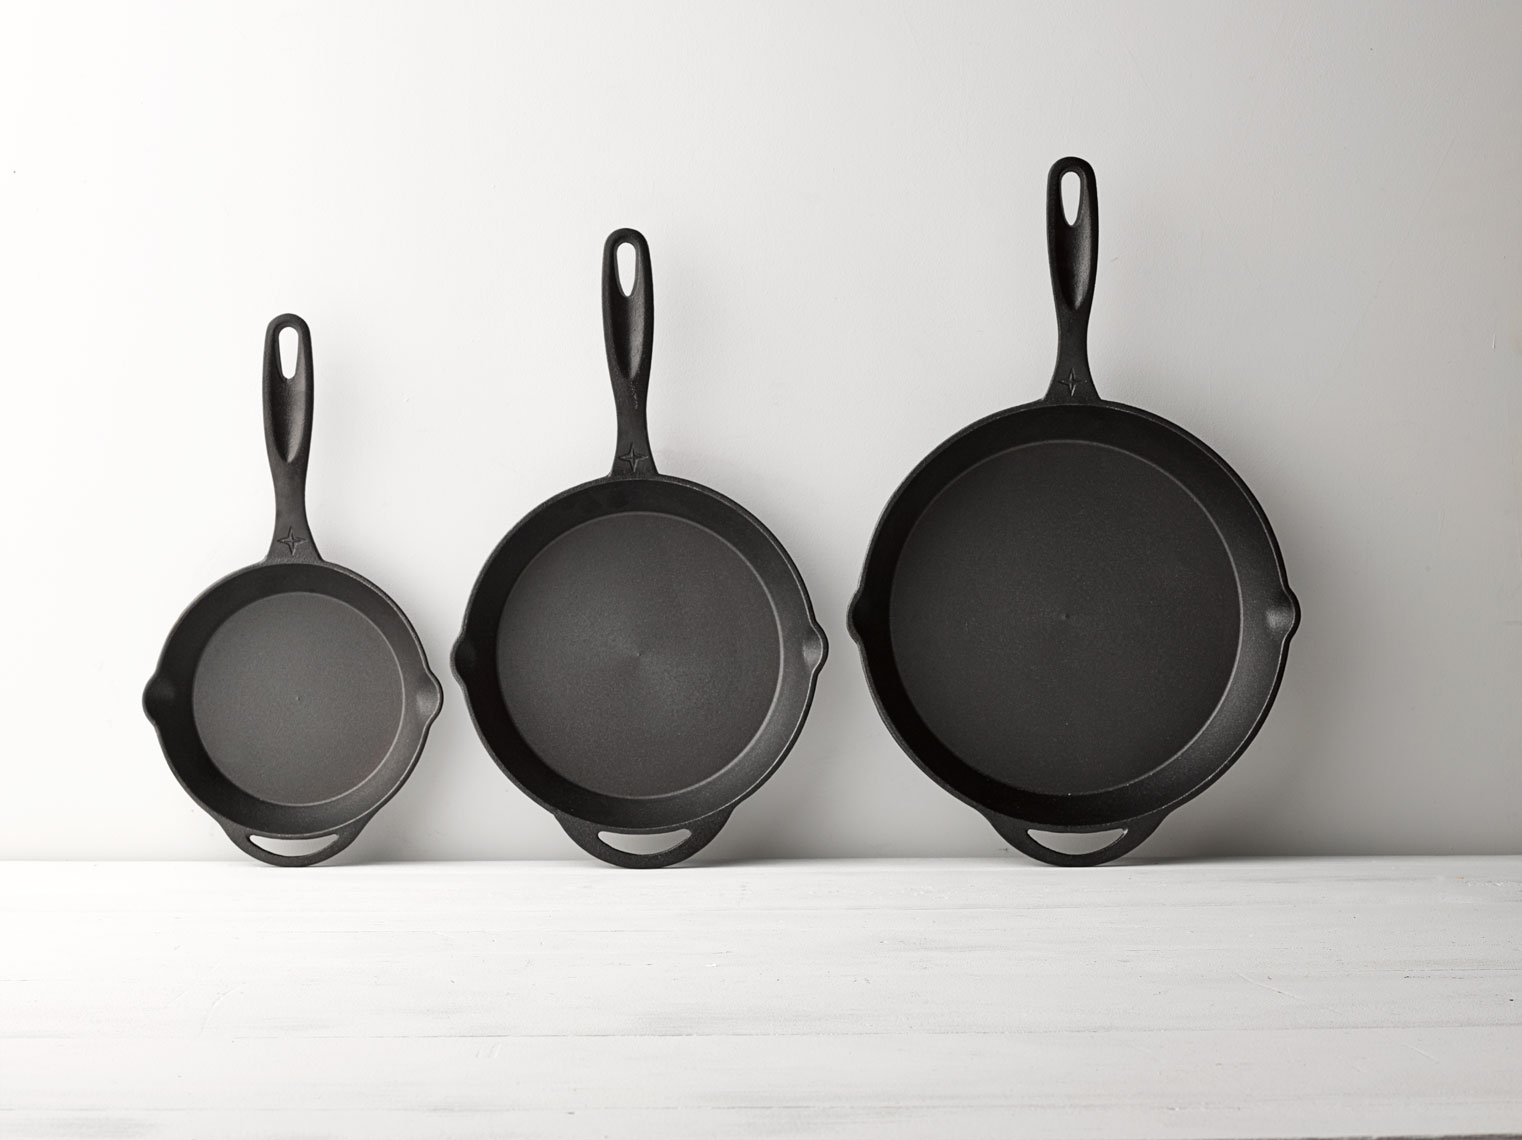 cast iron pan set in three sizes on a wall and table